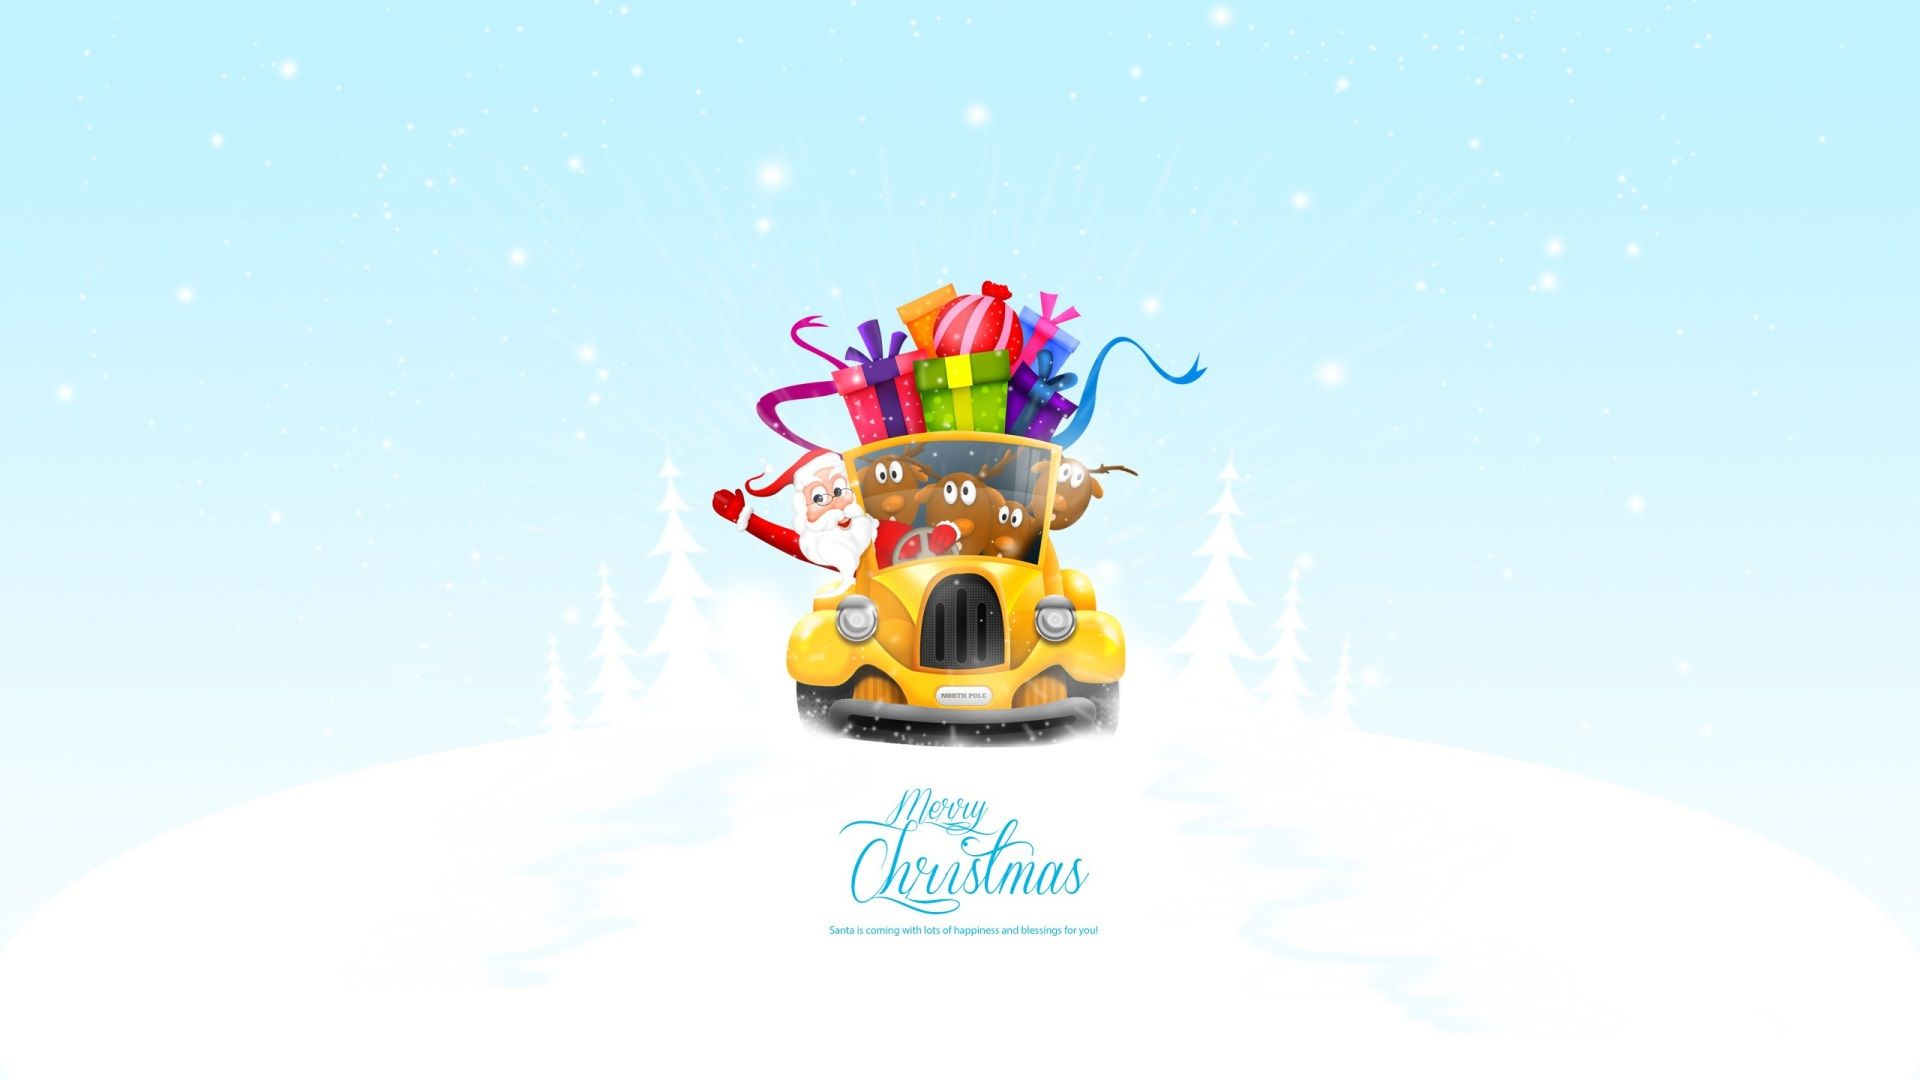 1920x1080 merry christmas free wallpaper downloads for pc